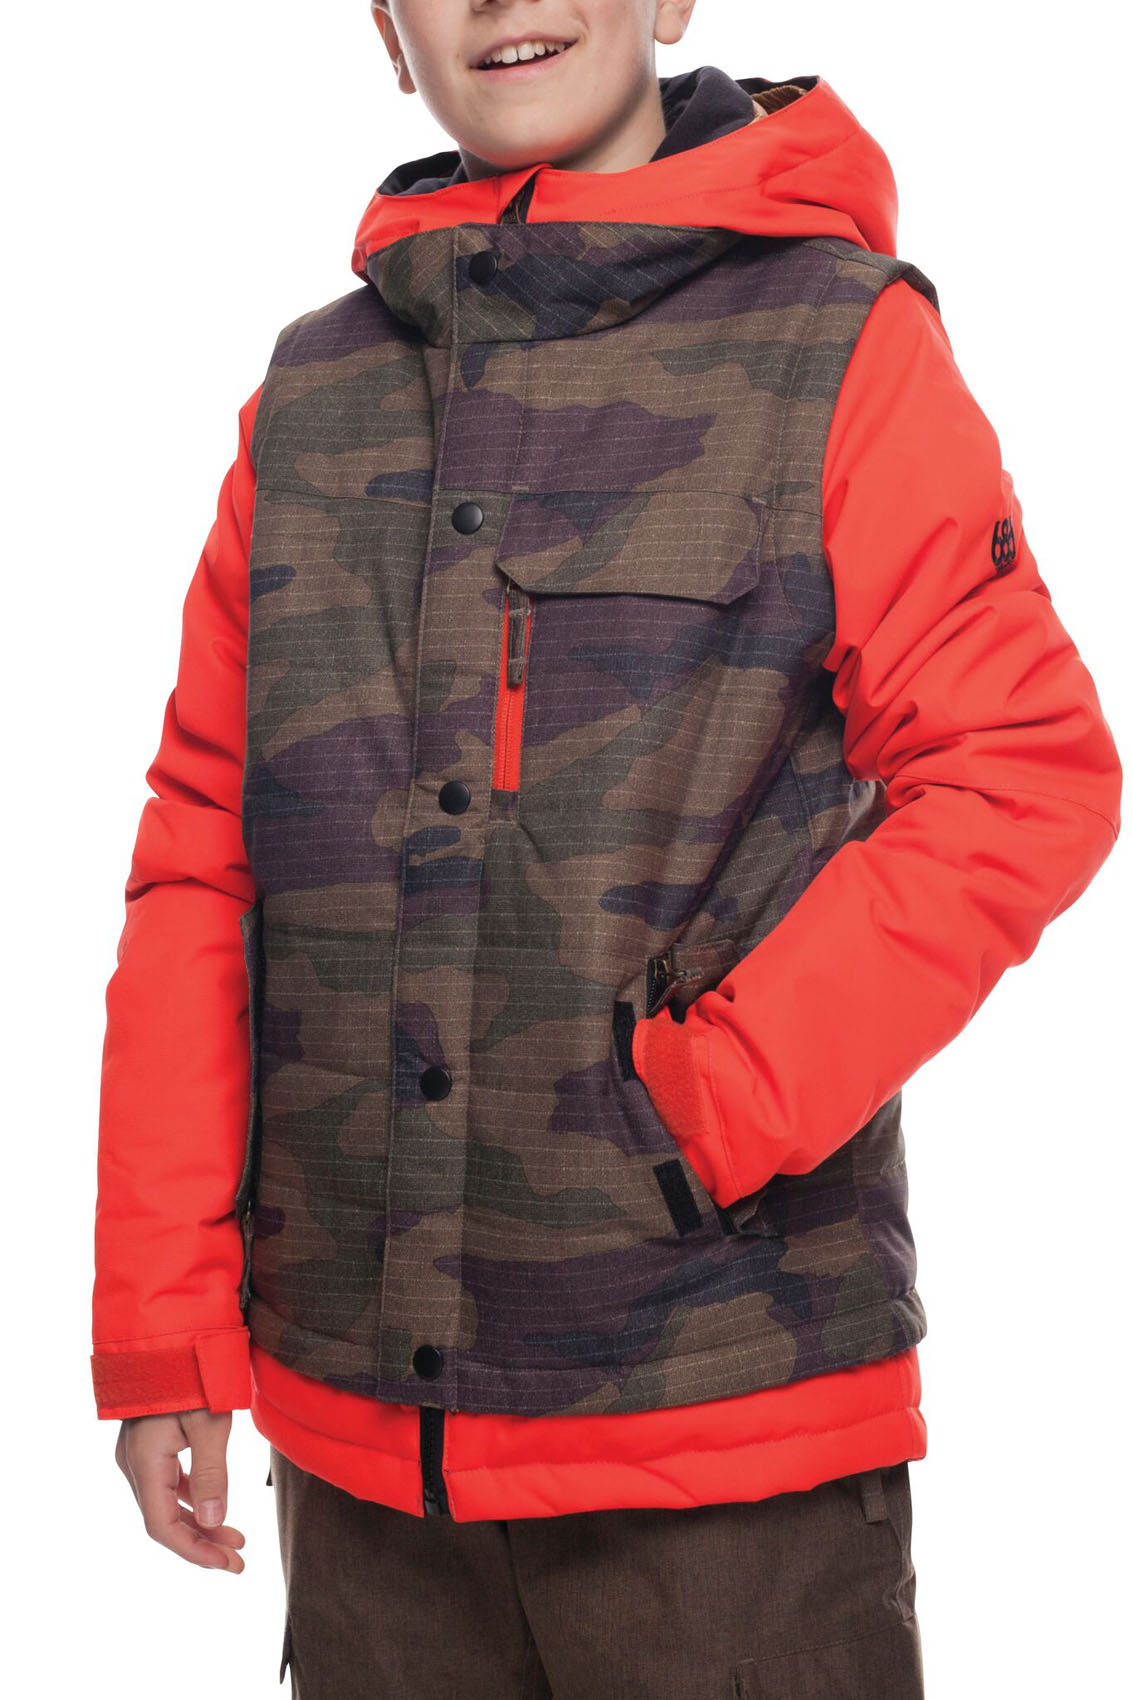 686 Boys Scout Insulated Snowboard Jacket 2019 Infrared Dark Camo Colorblock Medium